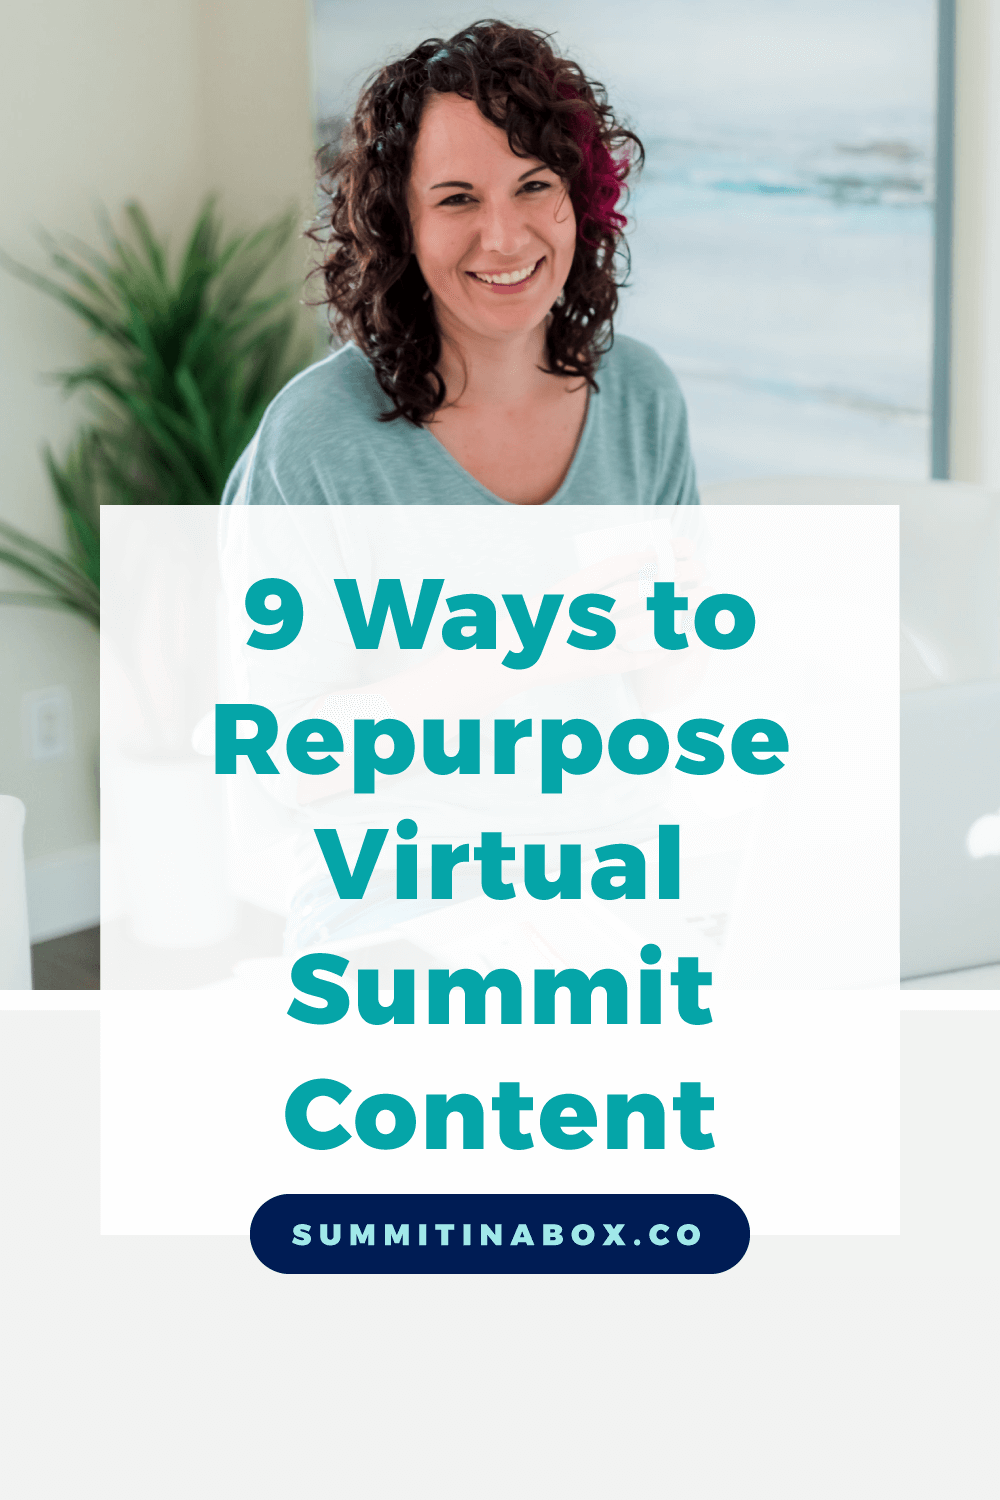 Instead of letting your summit become a thing of the past consider how you can reuse the content! Let's break down 9 ways to repurpose your virtual summit content.